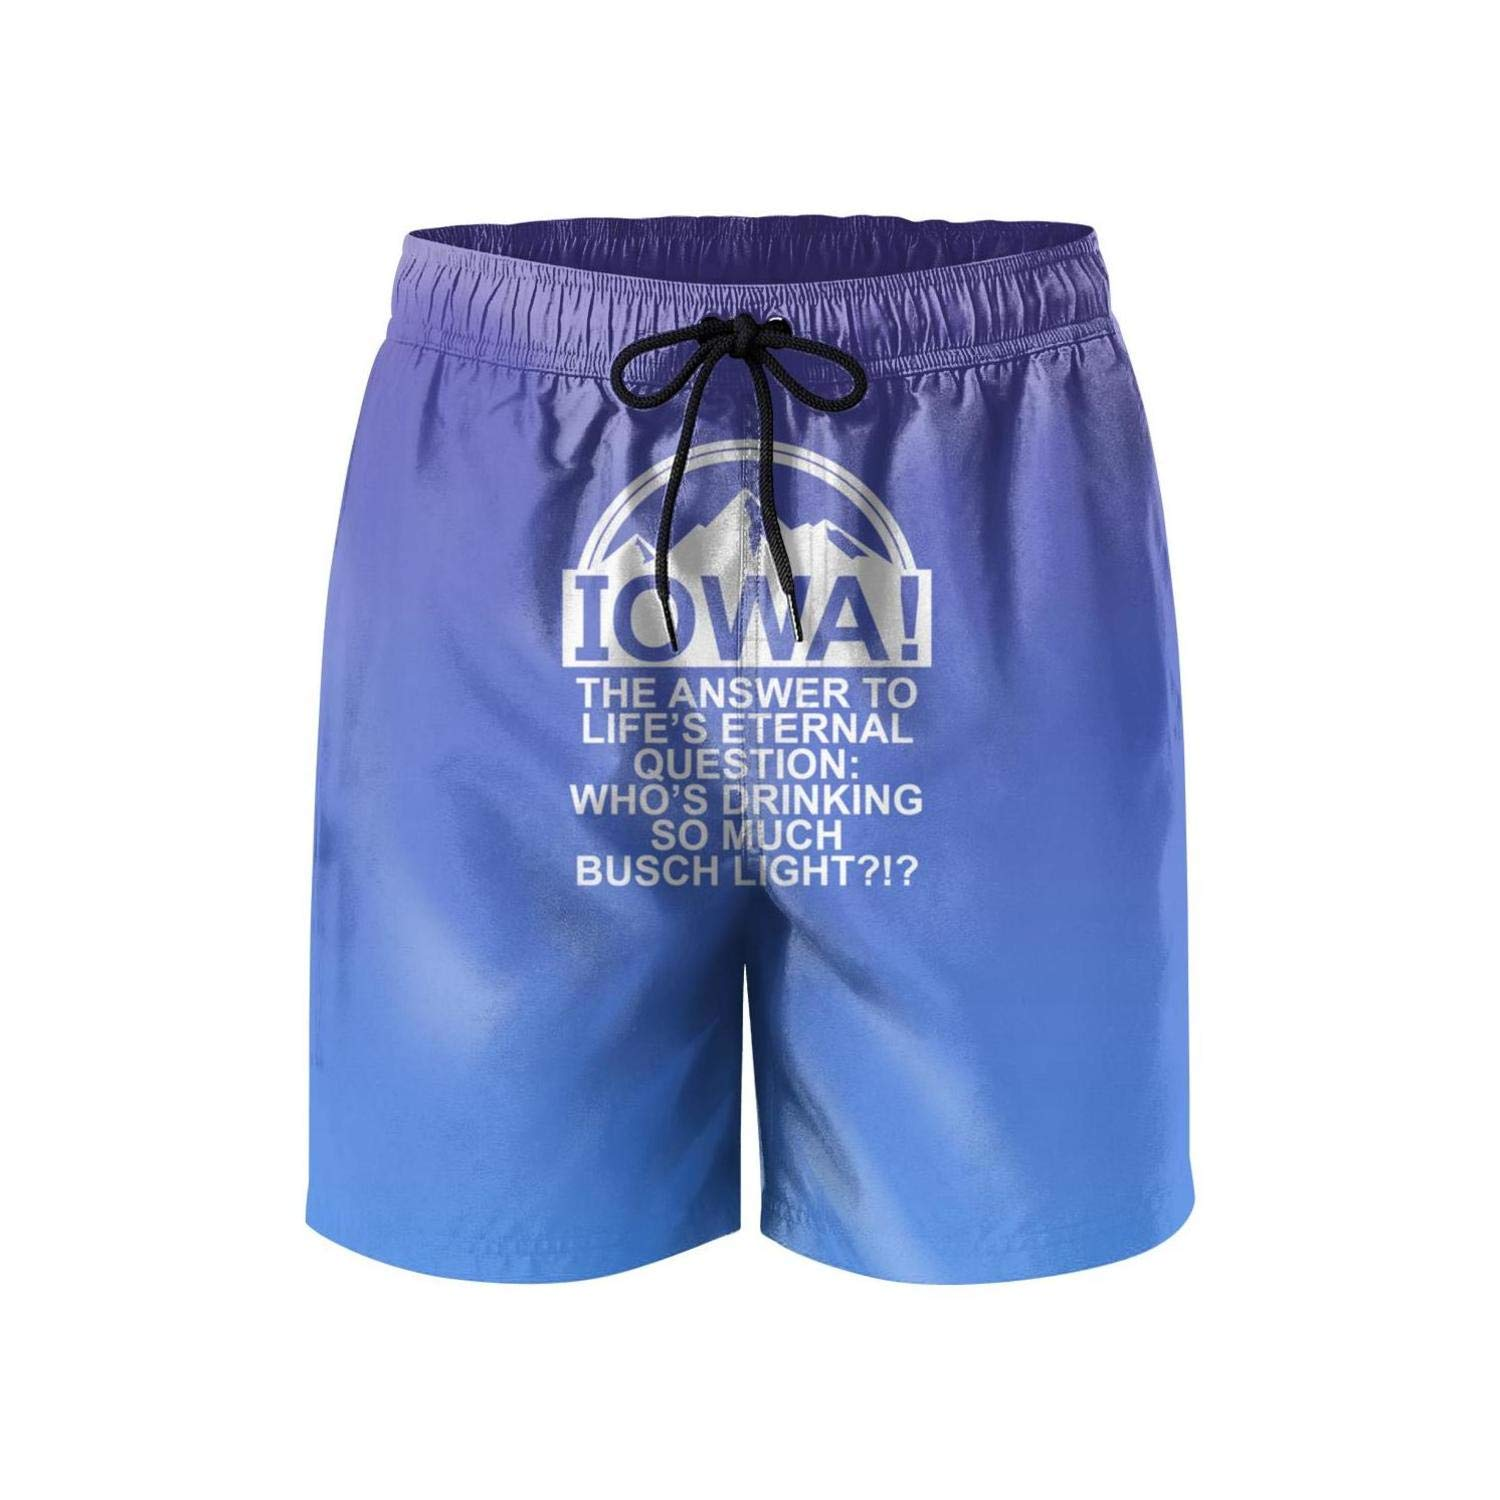 Busch Light Beer No11 Shorts